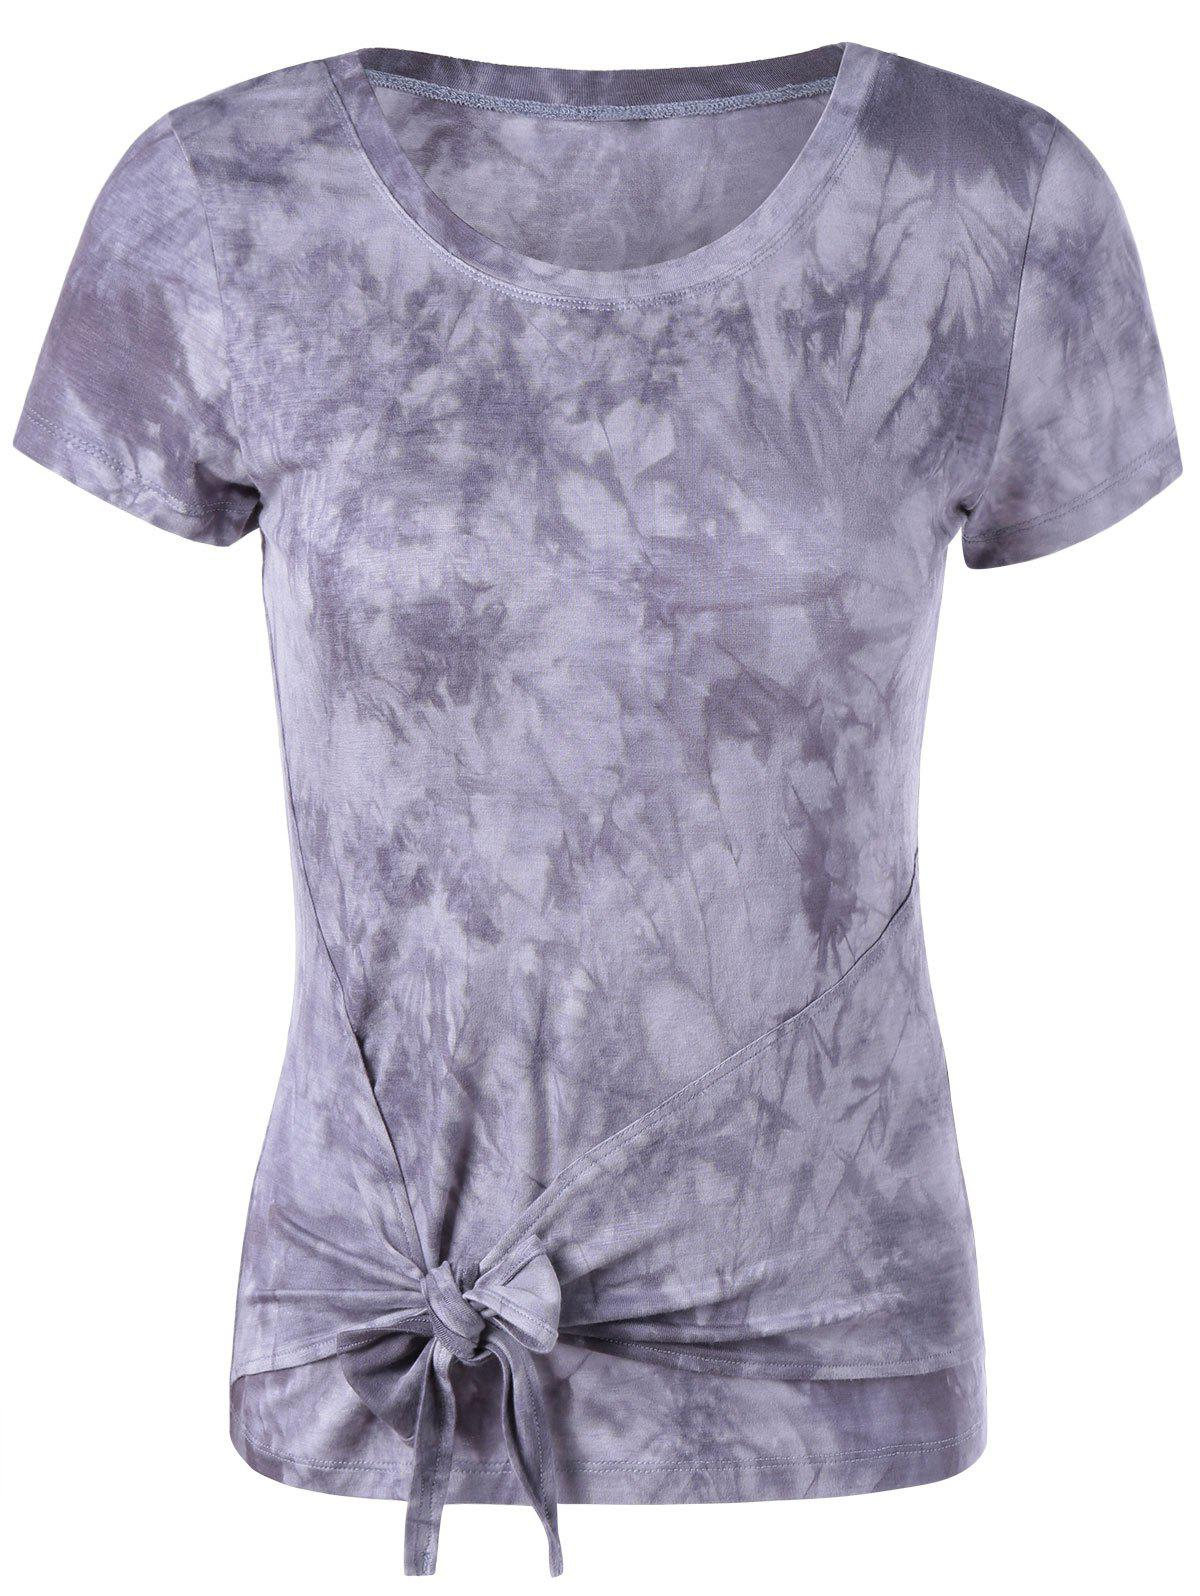 Fashionable Women's Round Collar Short Sleeve T-Shirt